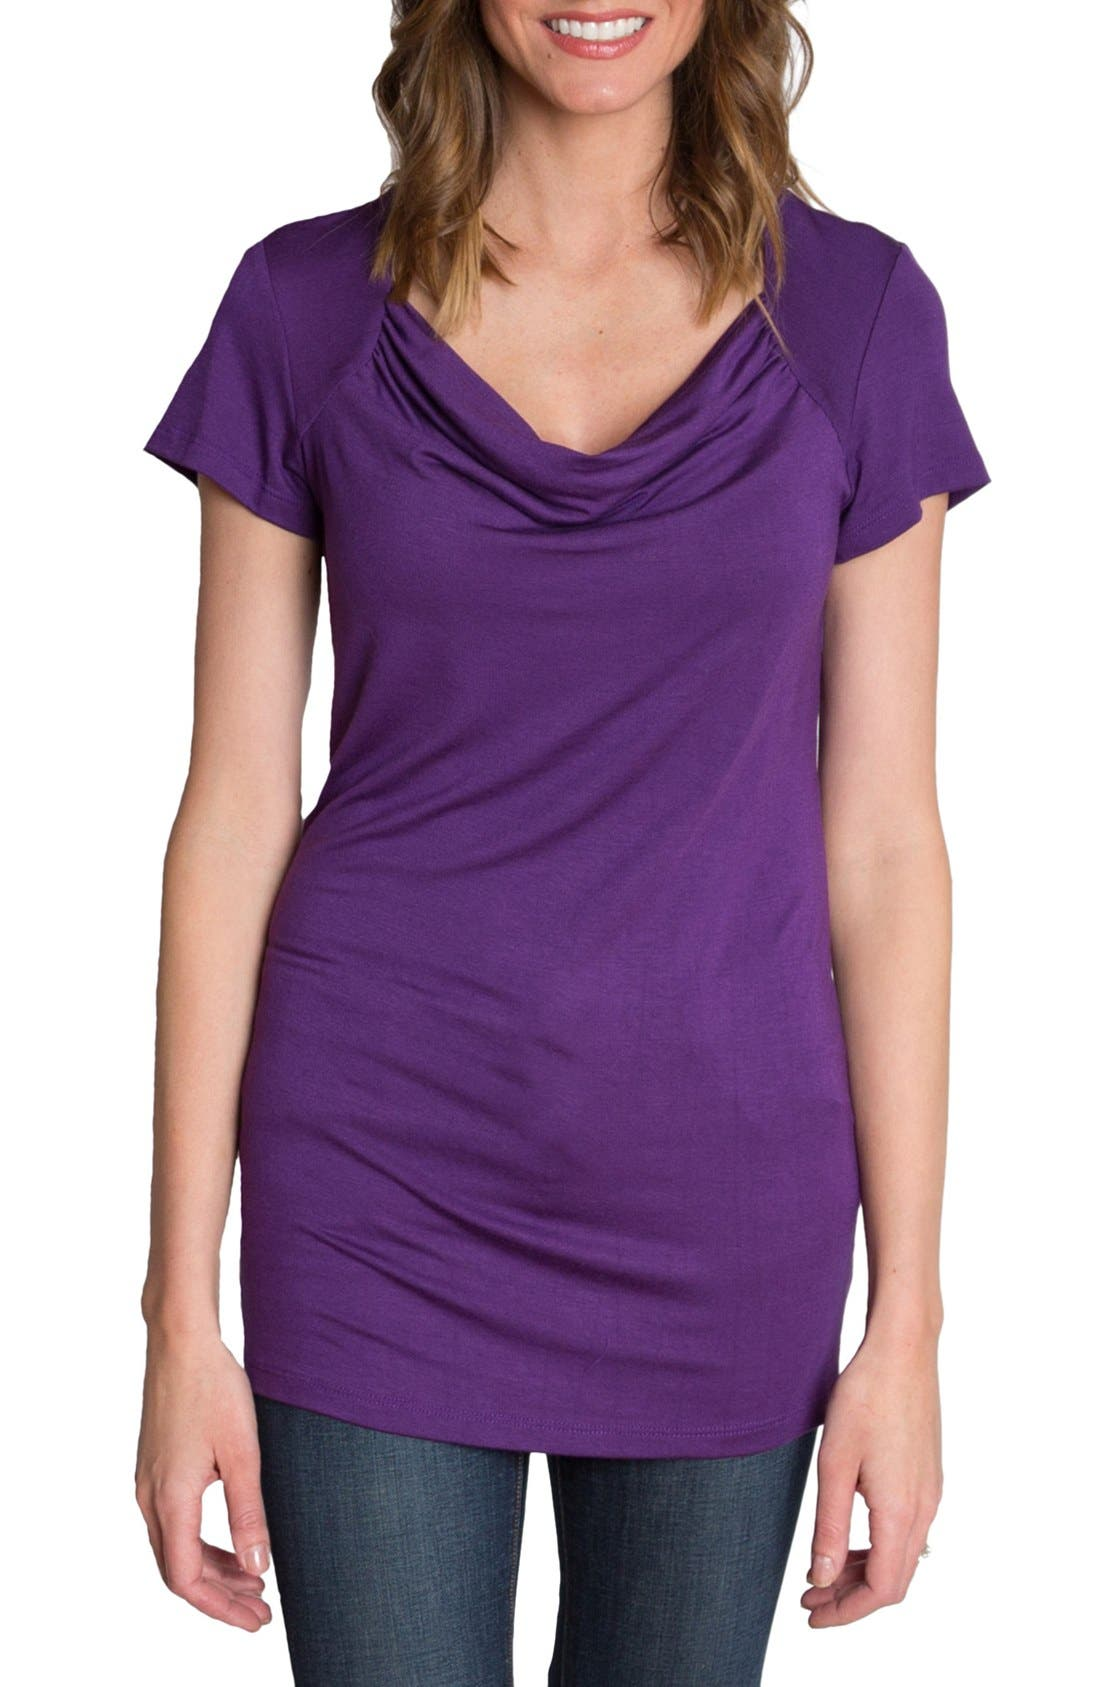 UDDERLY HOT MAMA 'Chic' Cowl Neck Nursing Tee, Main, color, PURPLE